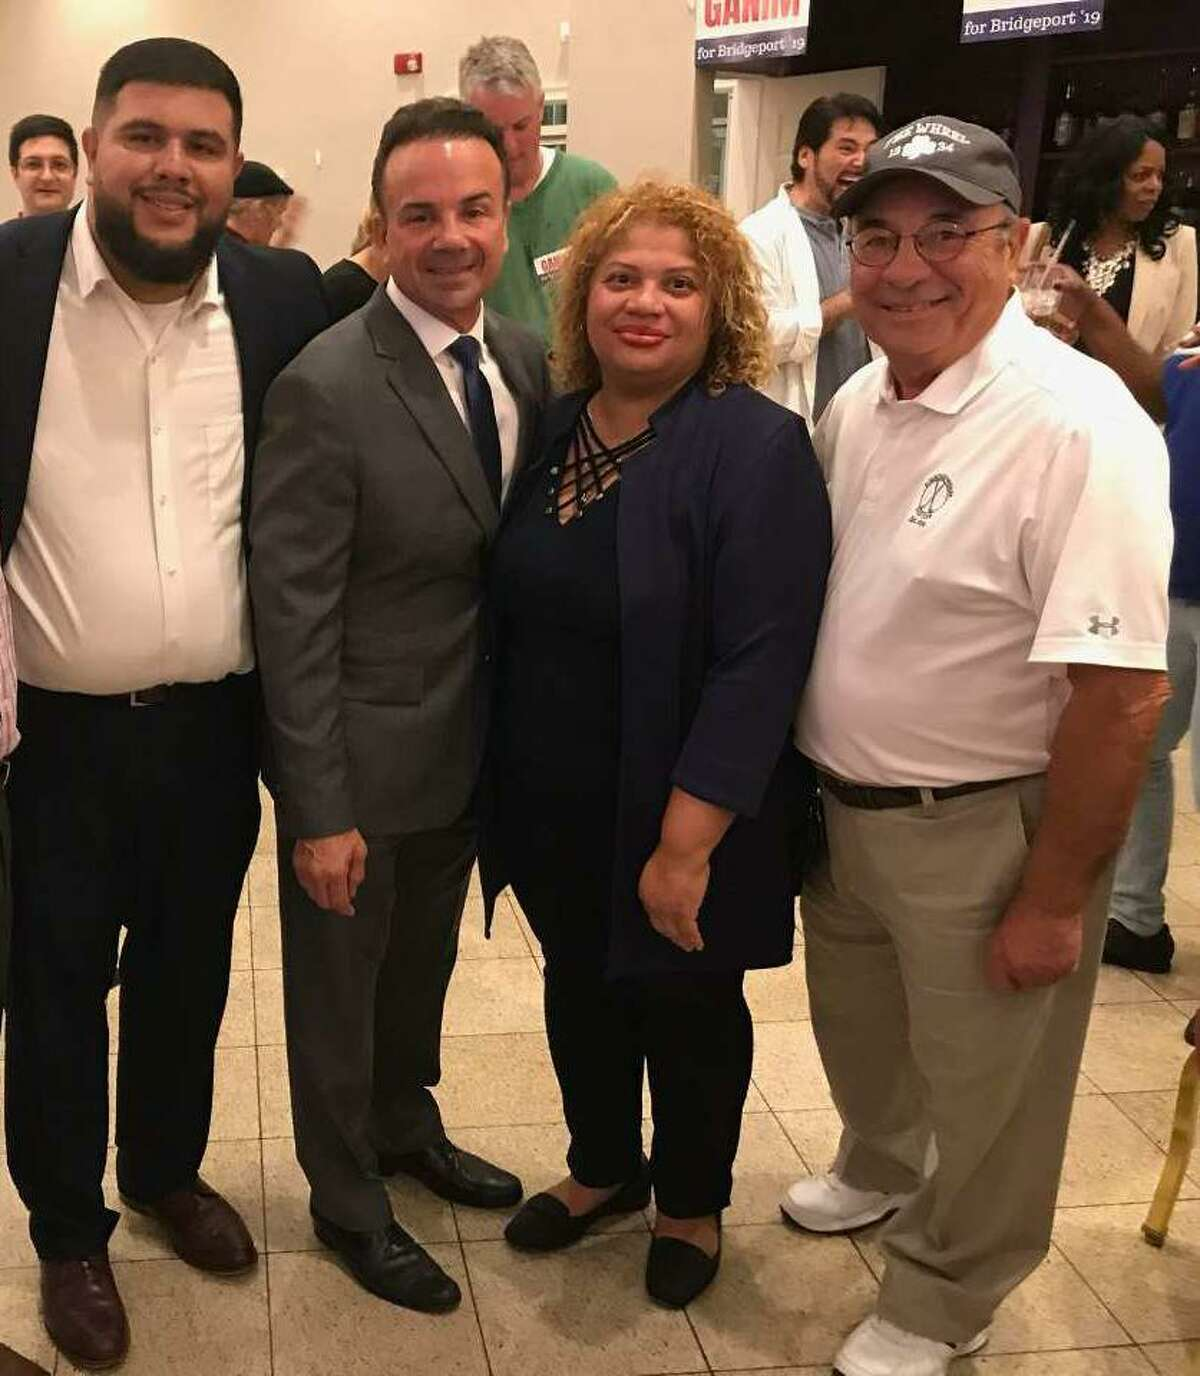 Dennis Scinto, right, who had COVID-19, recently died. He is shown here with state Rep. Chris Rosario, Mayor Joe Ganim, and Council President Aidee Nieves.